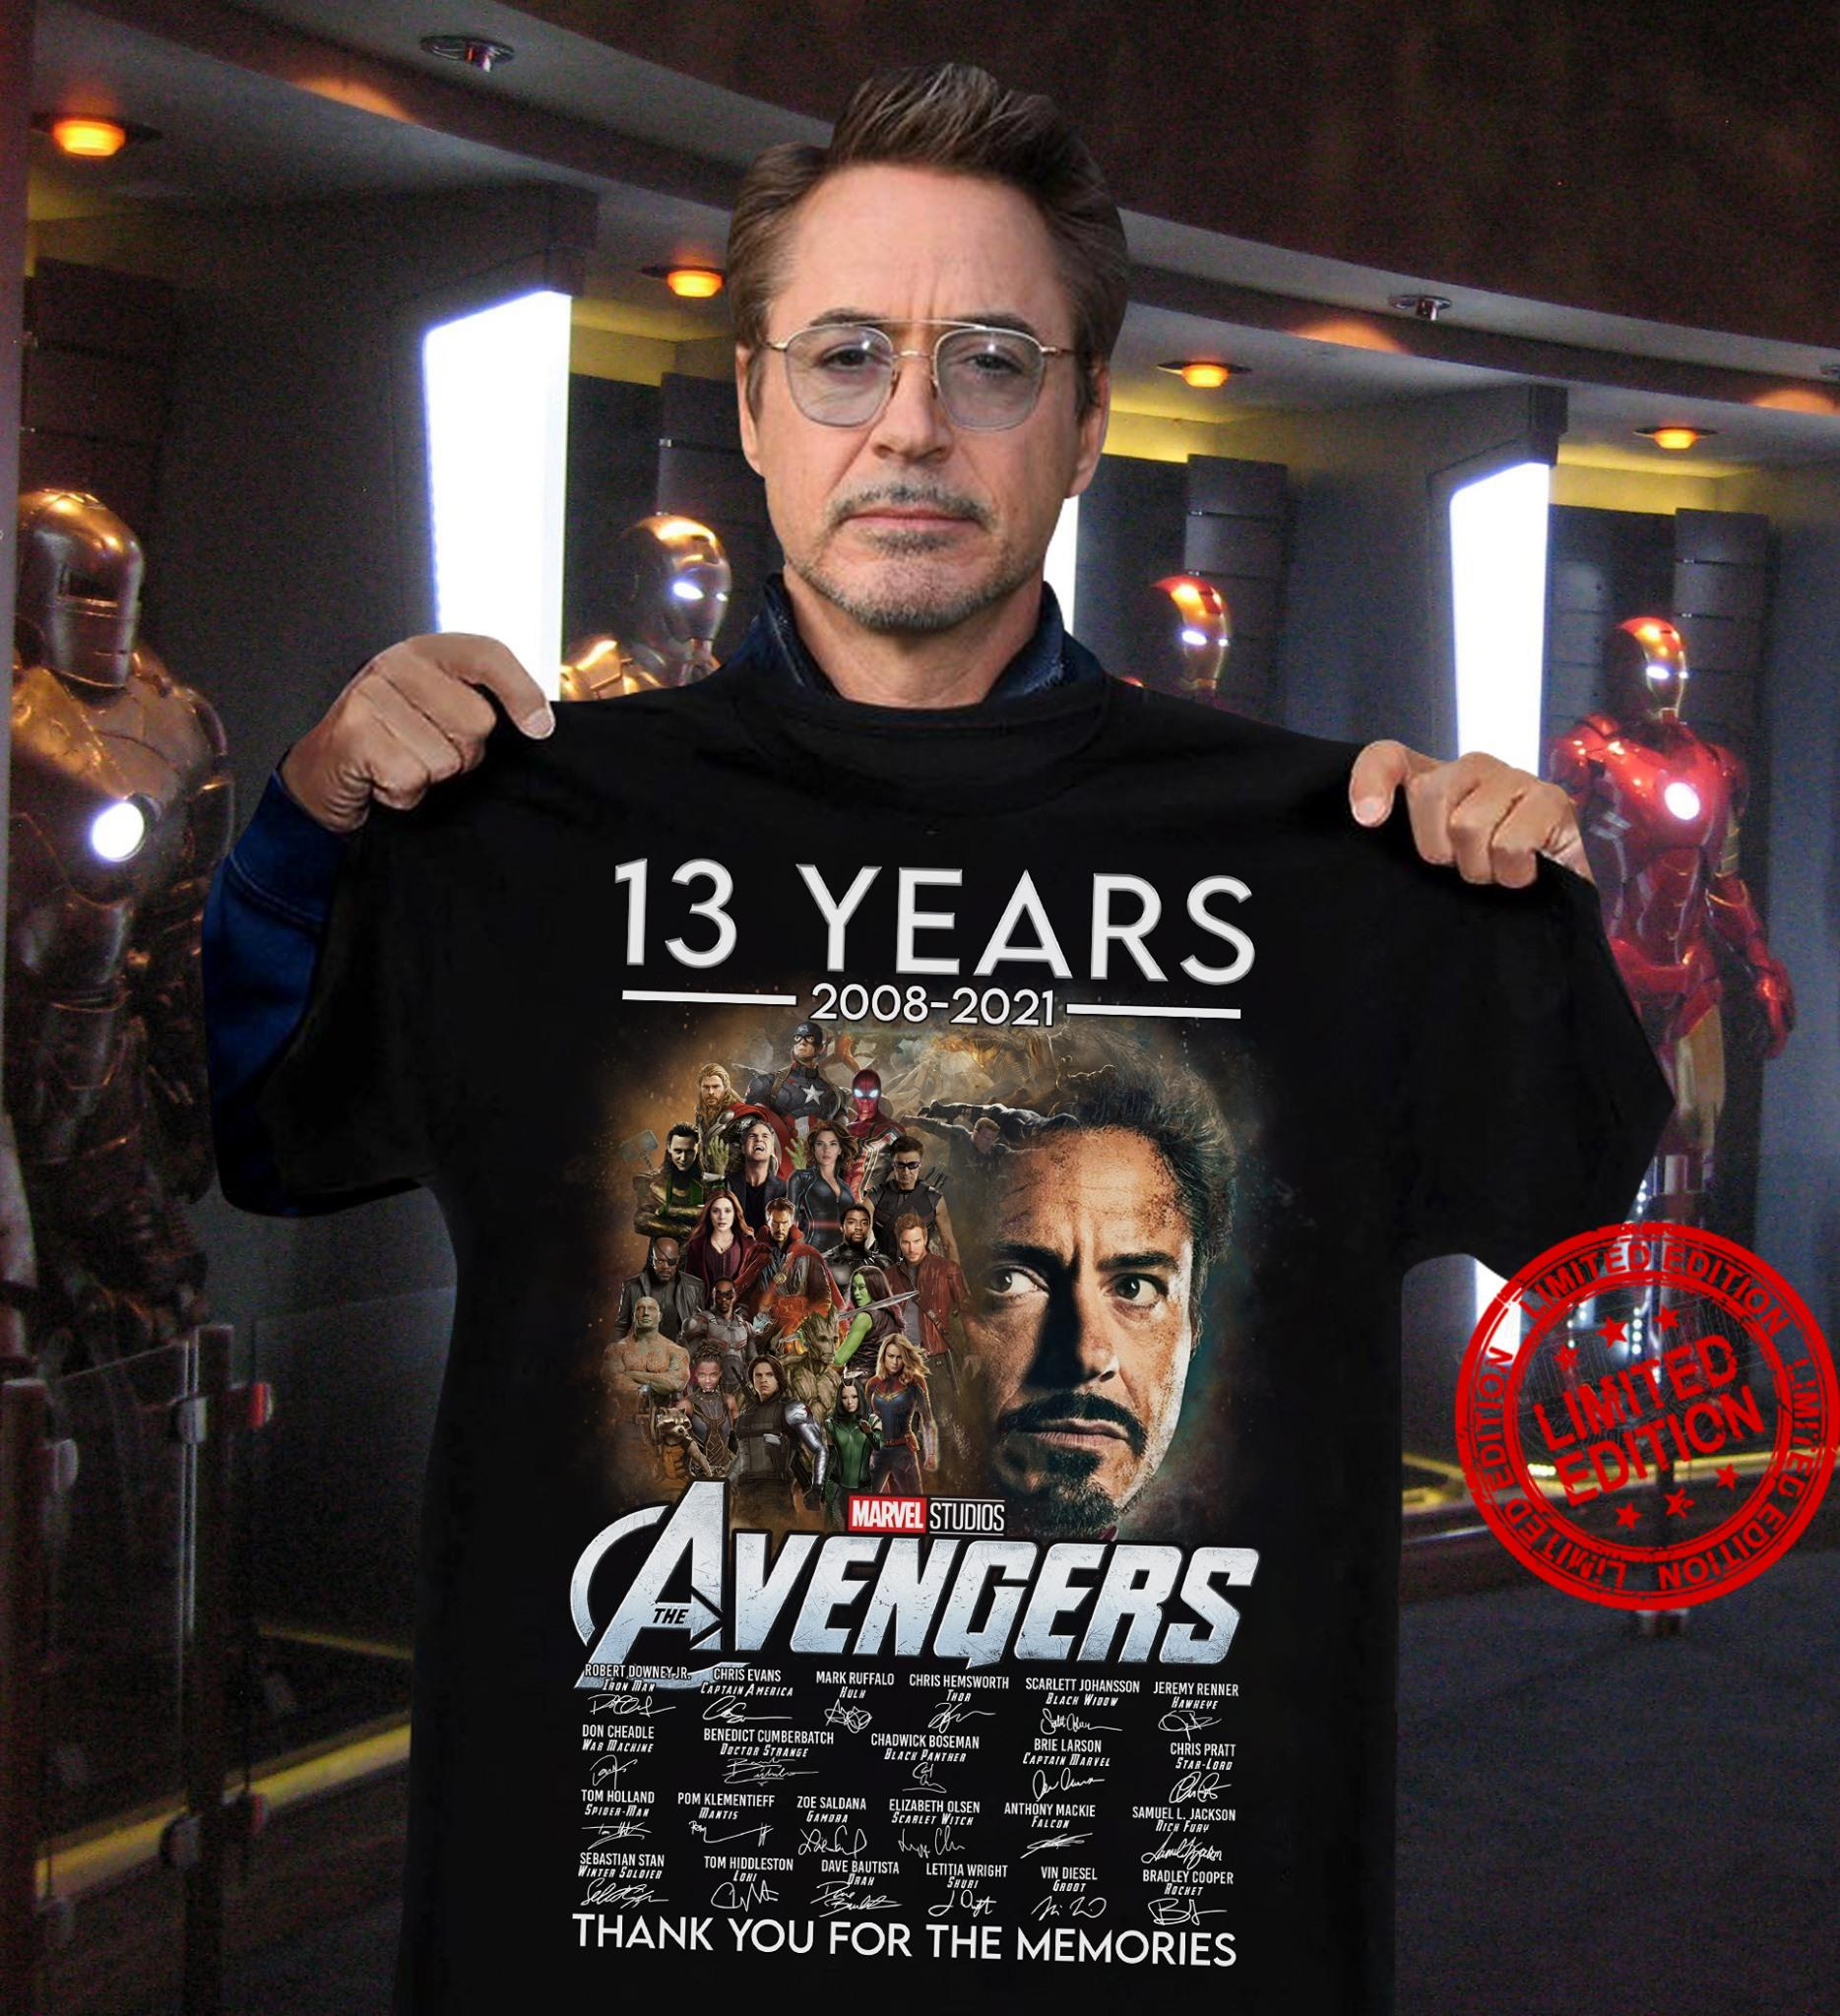 13 Years 2008 2021 Marvel Studios Avengers Thank You For The Memories Shirt